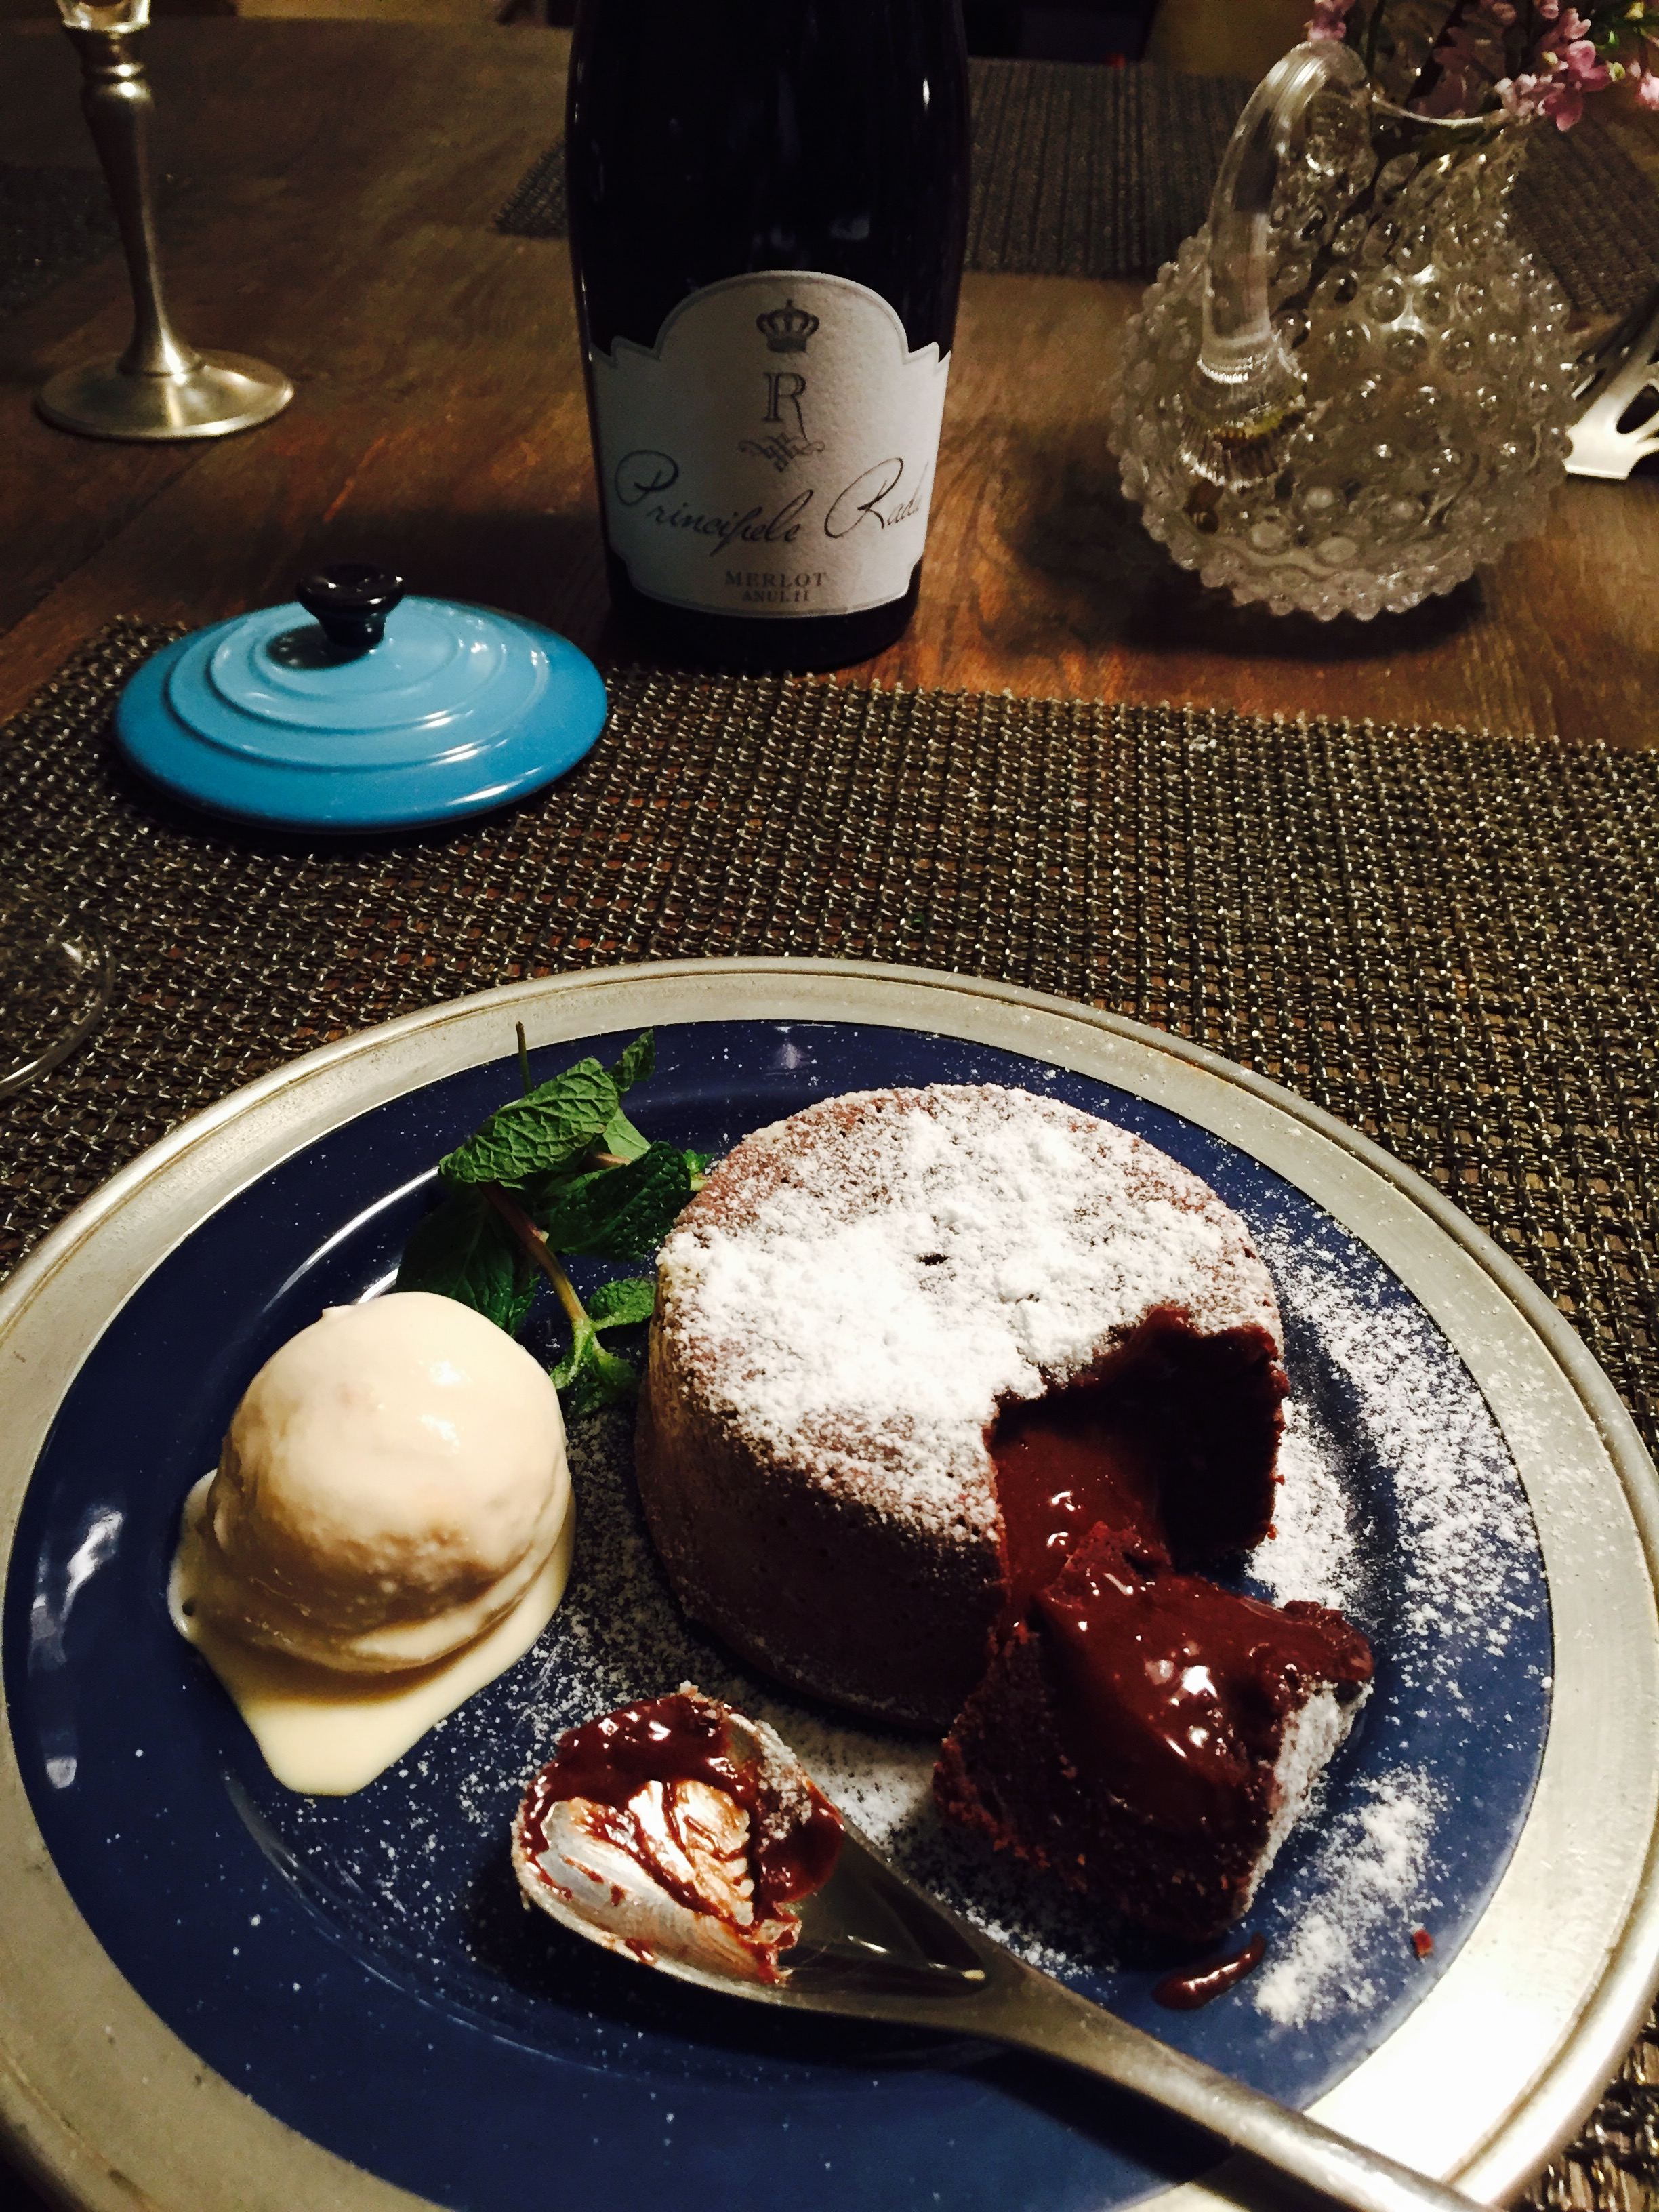 A romantic dessert – the lava cake